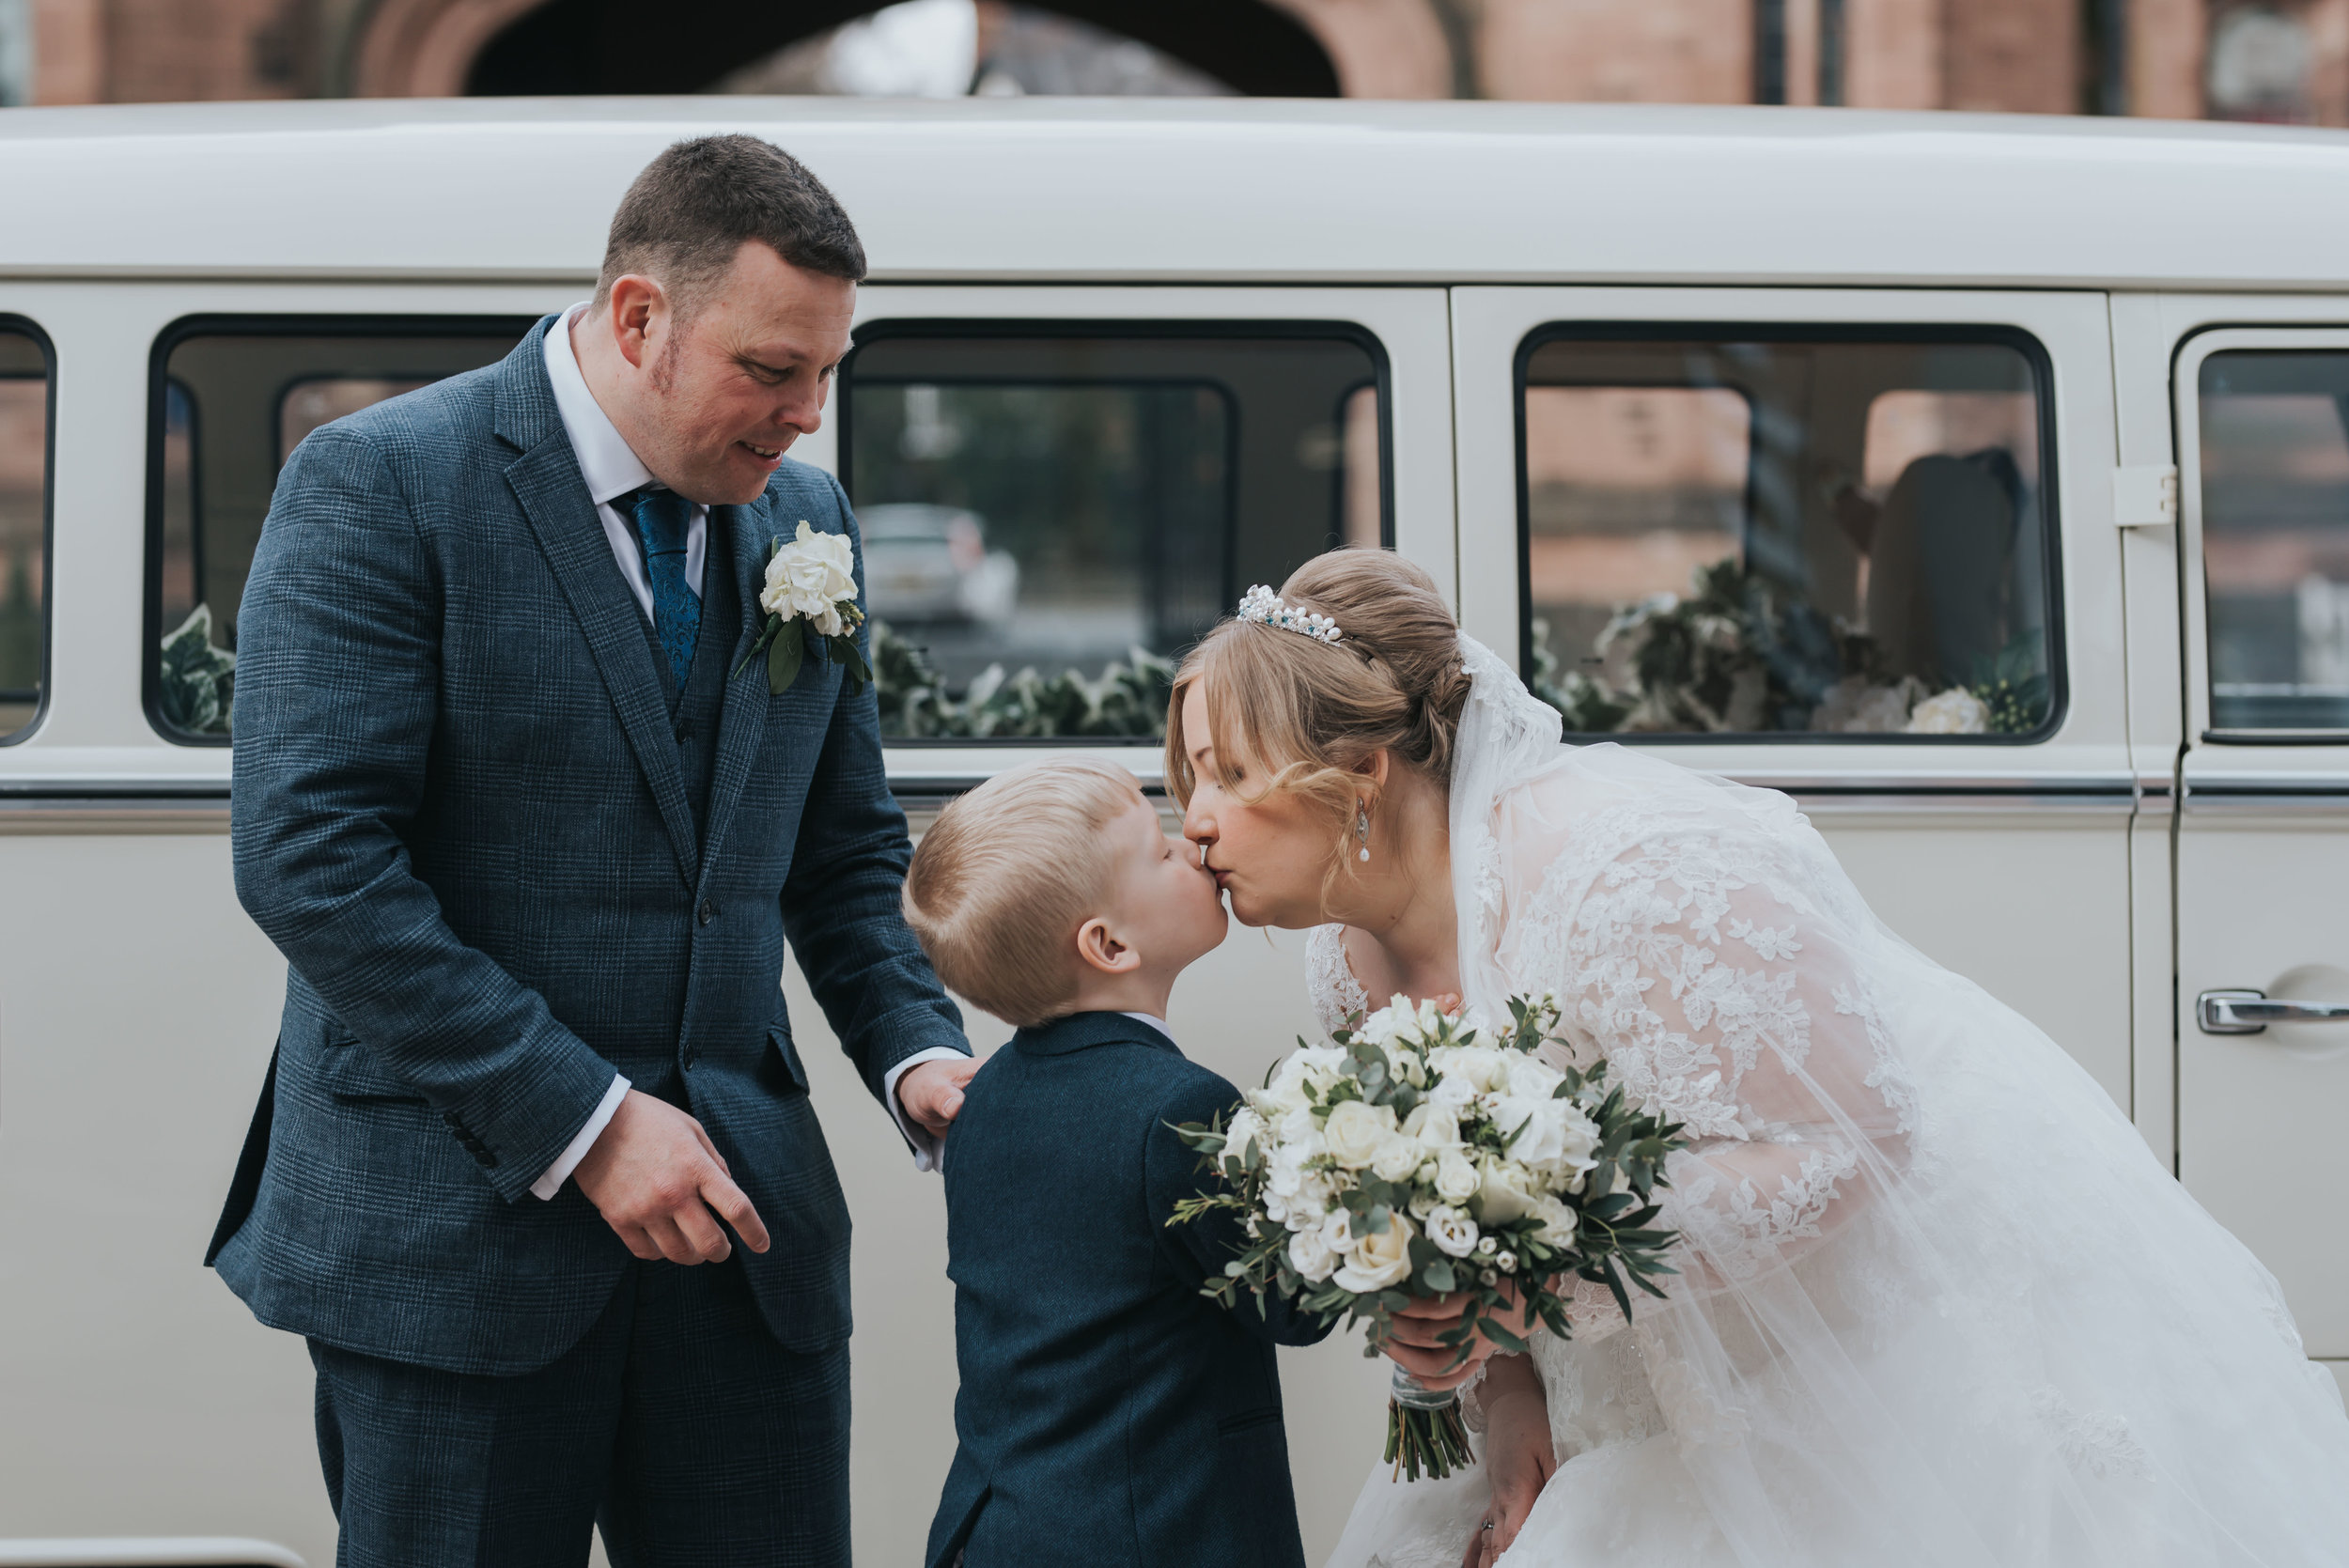 Bolton School Wedding Photographer based in lancashire and cheshire (14 of 20).jpg